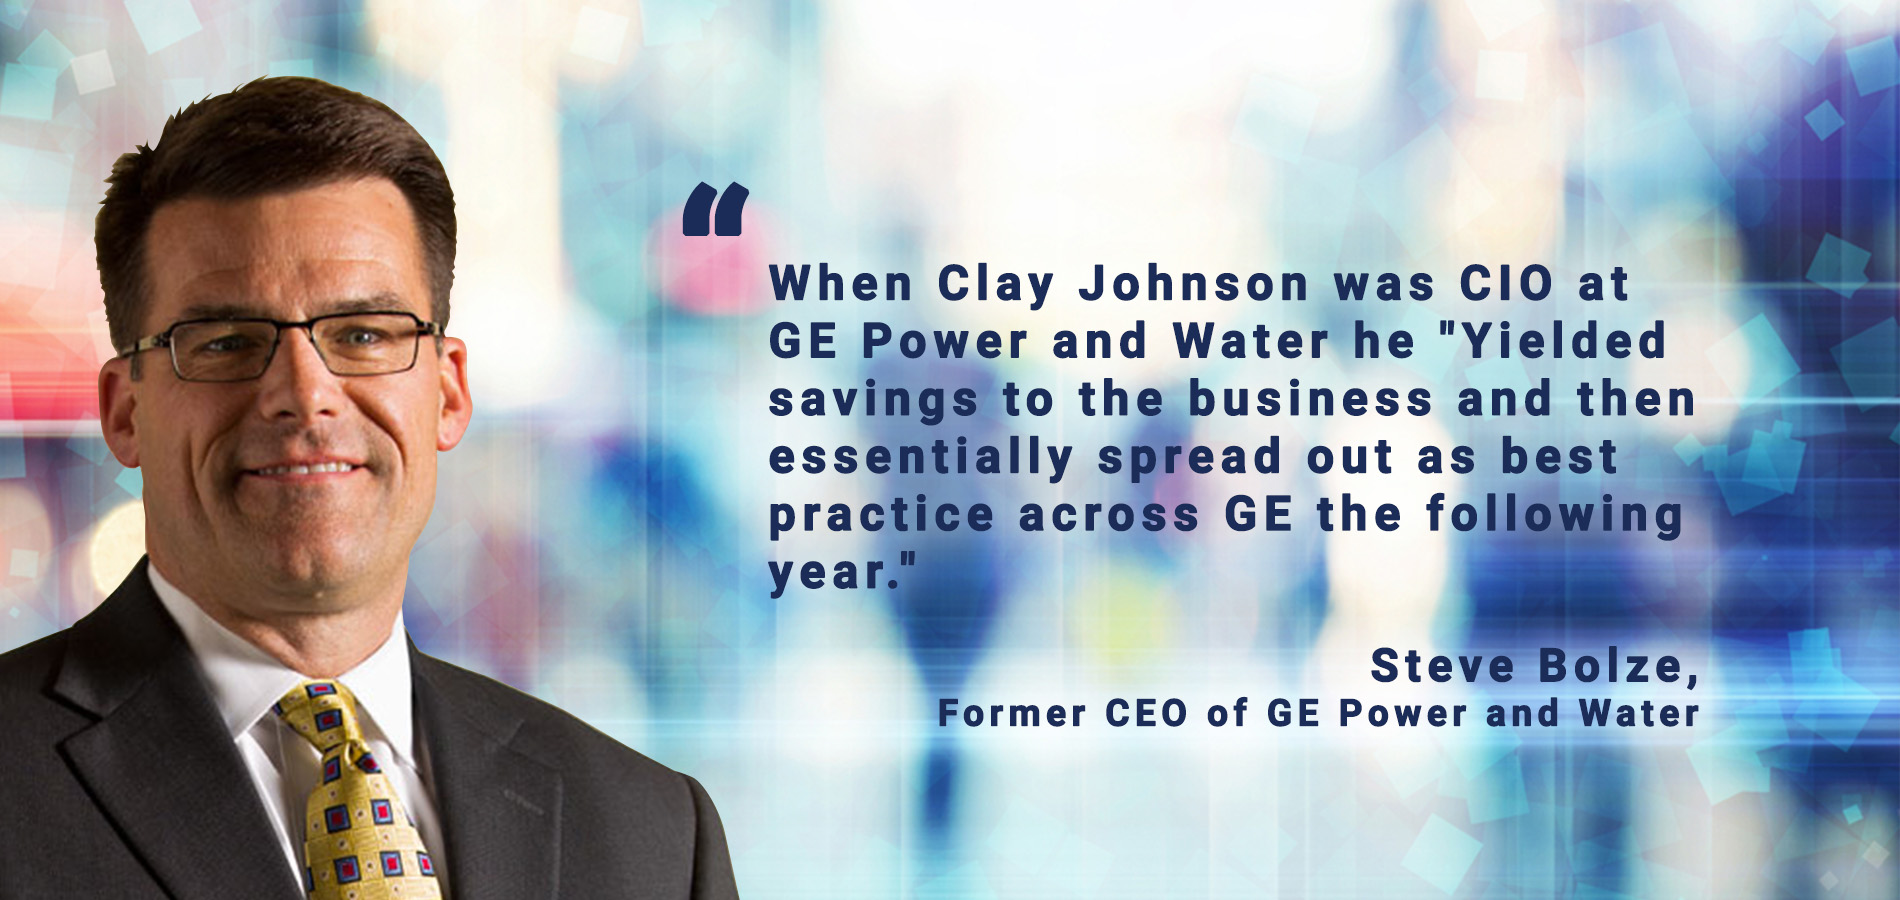 Steve Bolze Former GE CEO discussing Clay Johnson Walmart